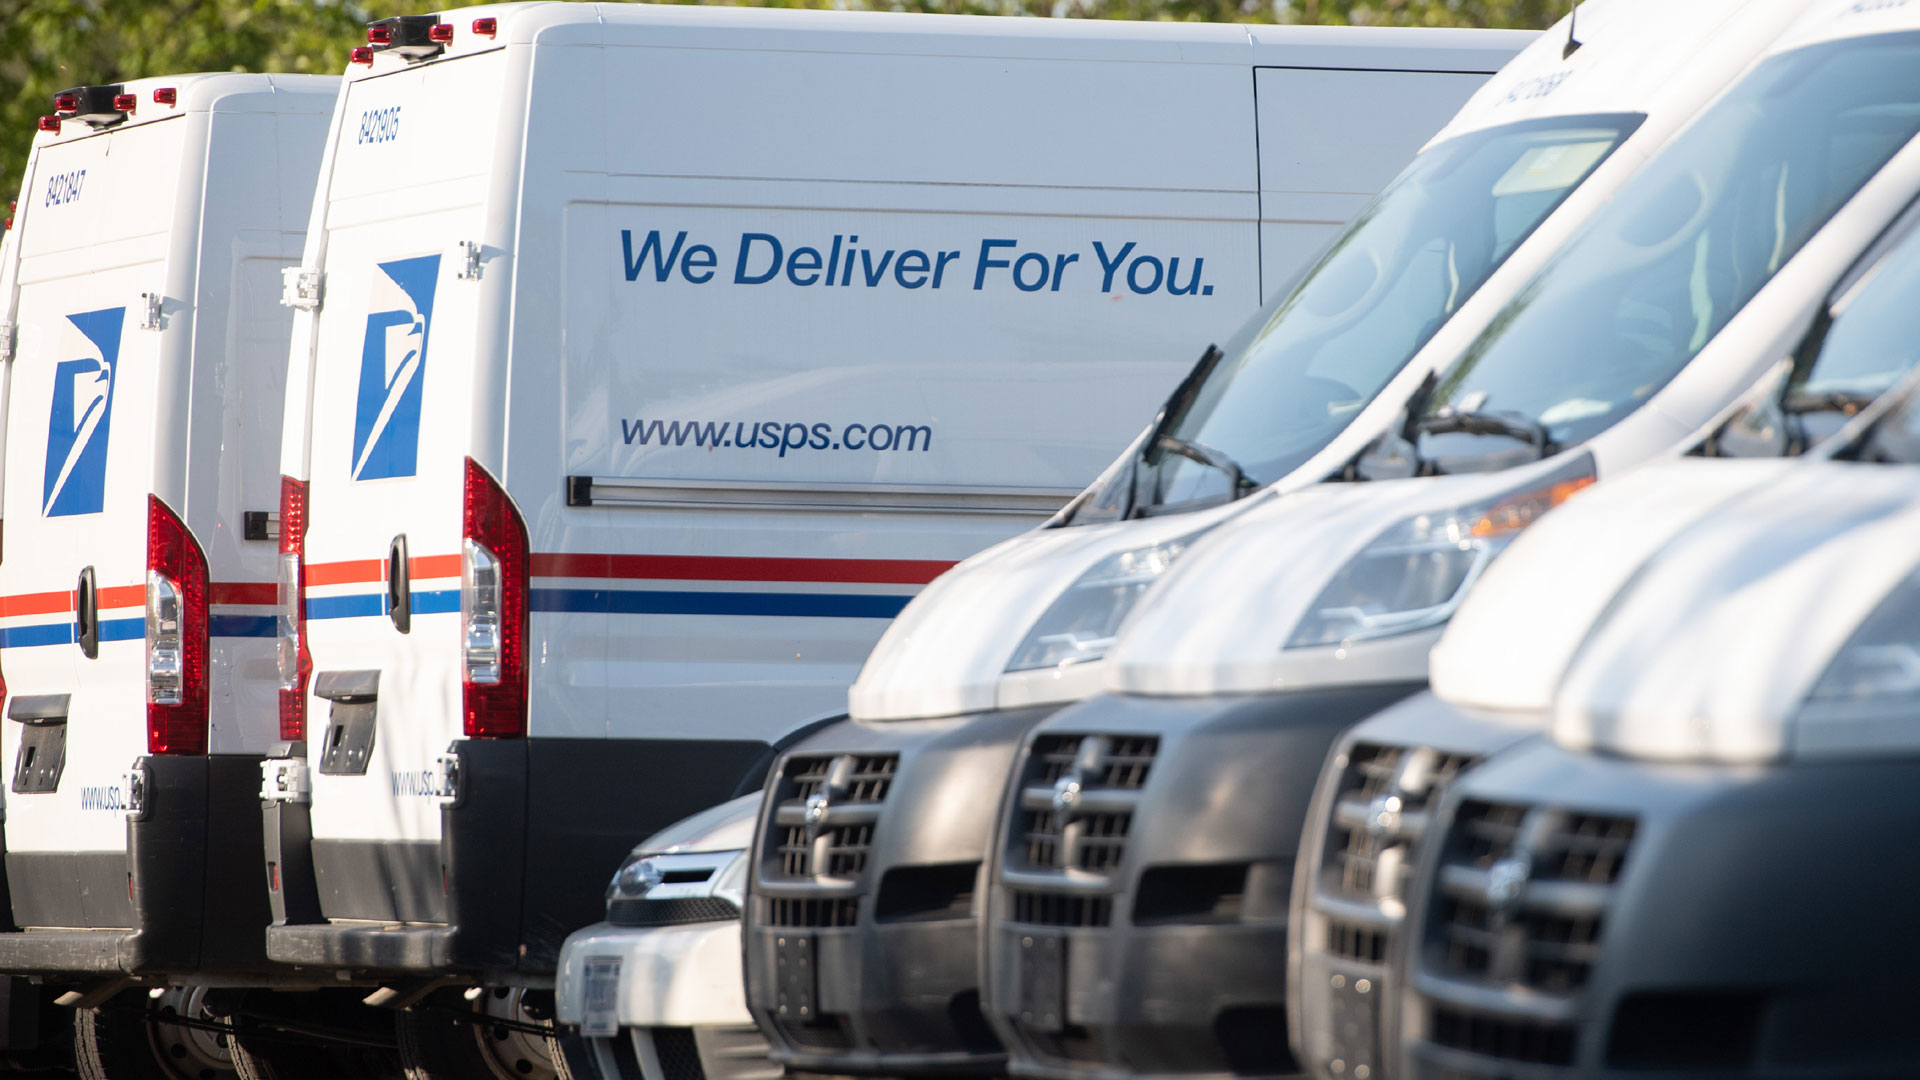 Ohio Mail Carrier Arrested, Didnt Deliver Hundreds Of Pieces Of Mail | News Break